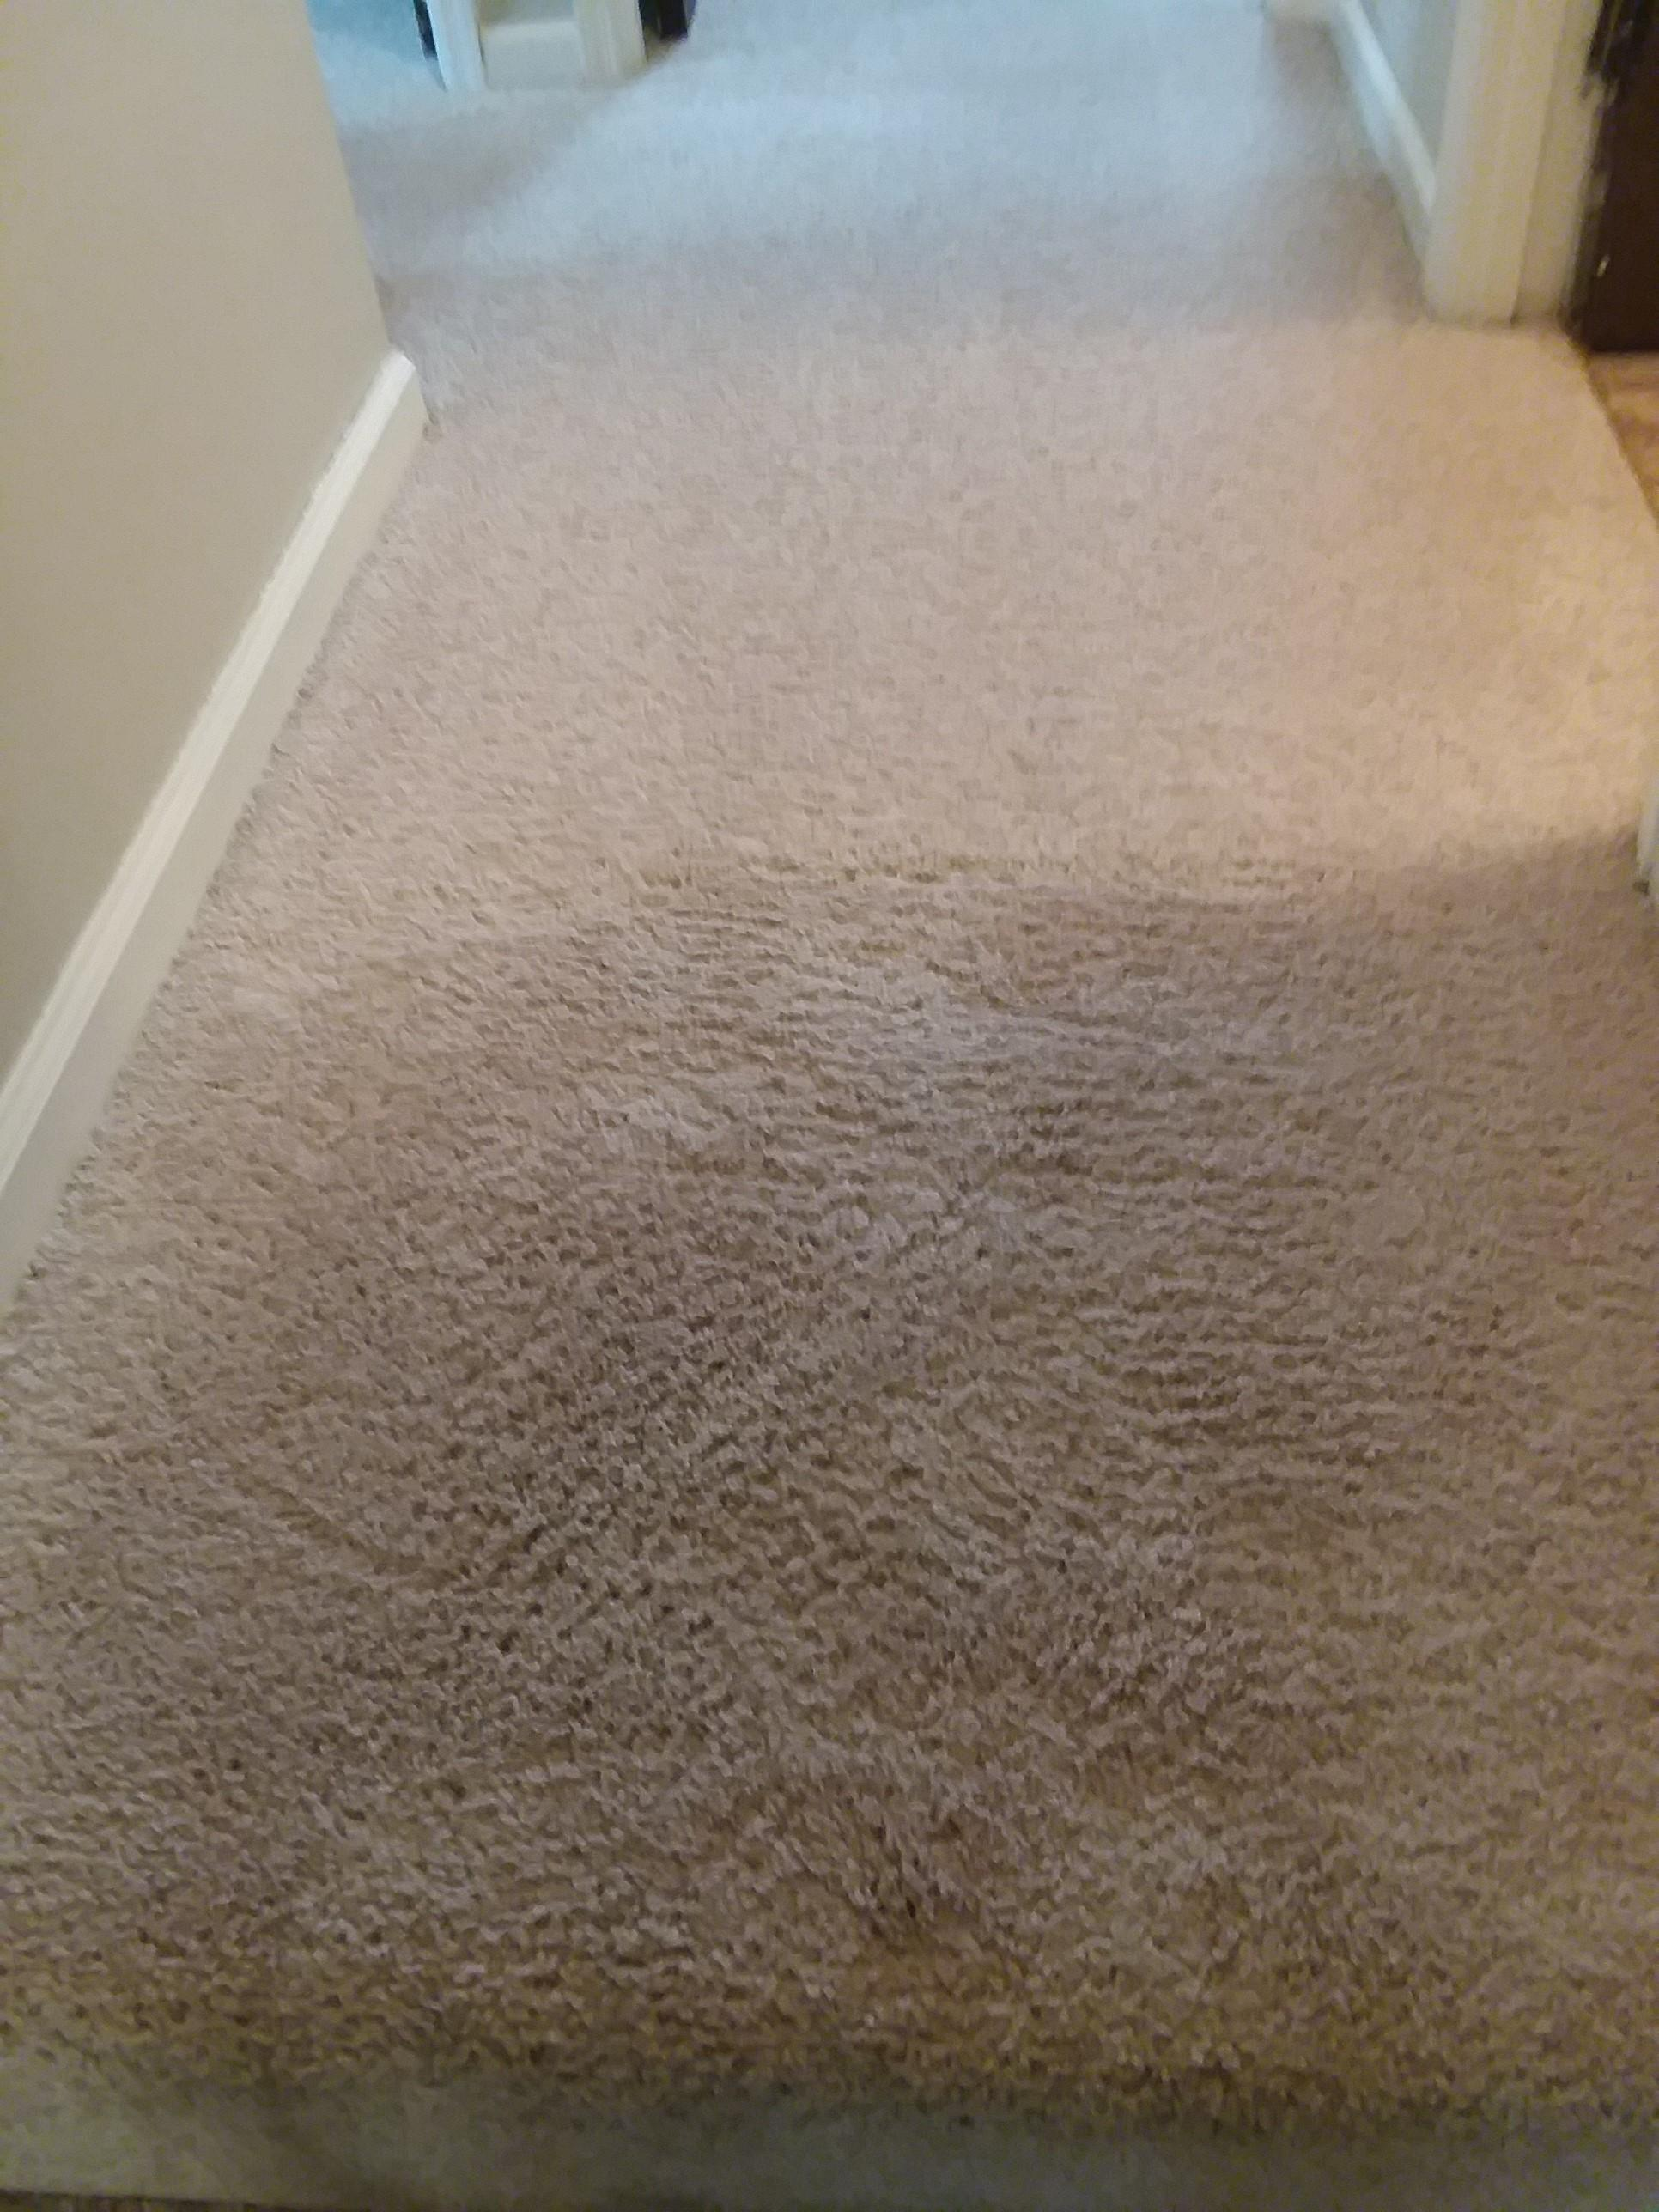 Clean Rite Carpet Cleaning image 48